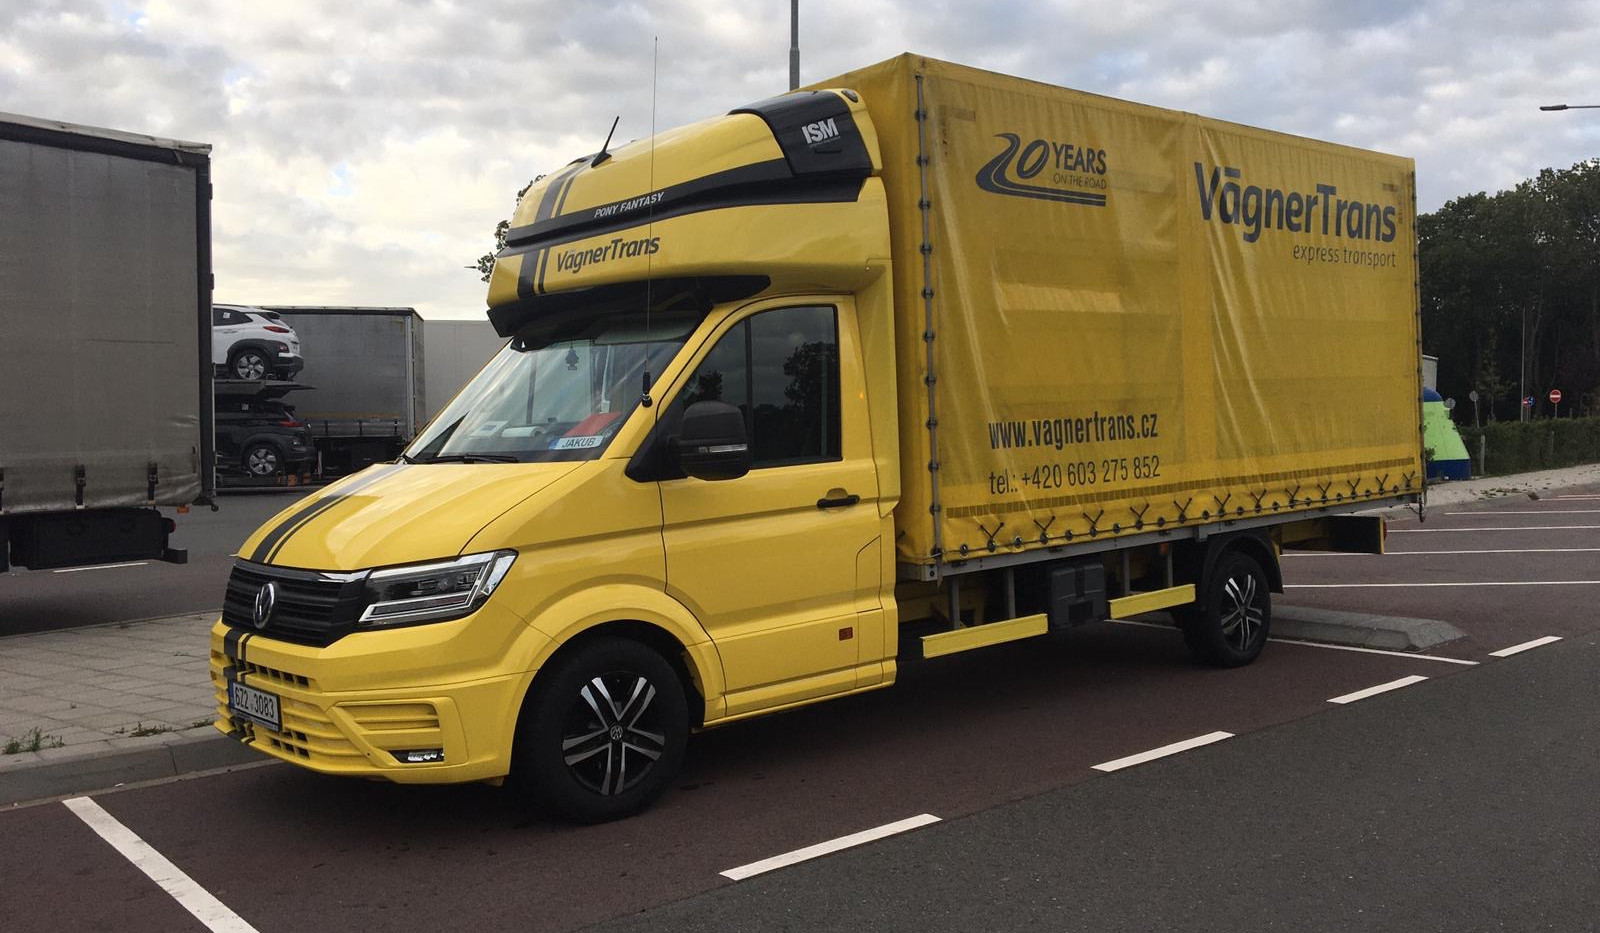 VW Crafter VagnerTrans